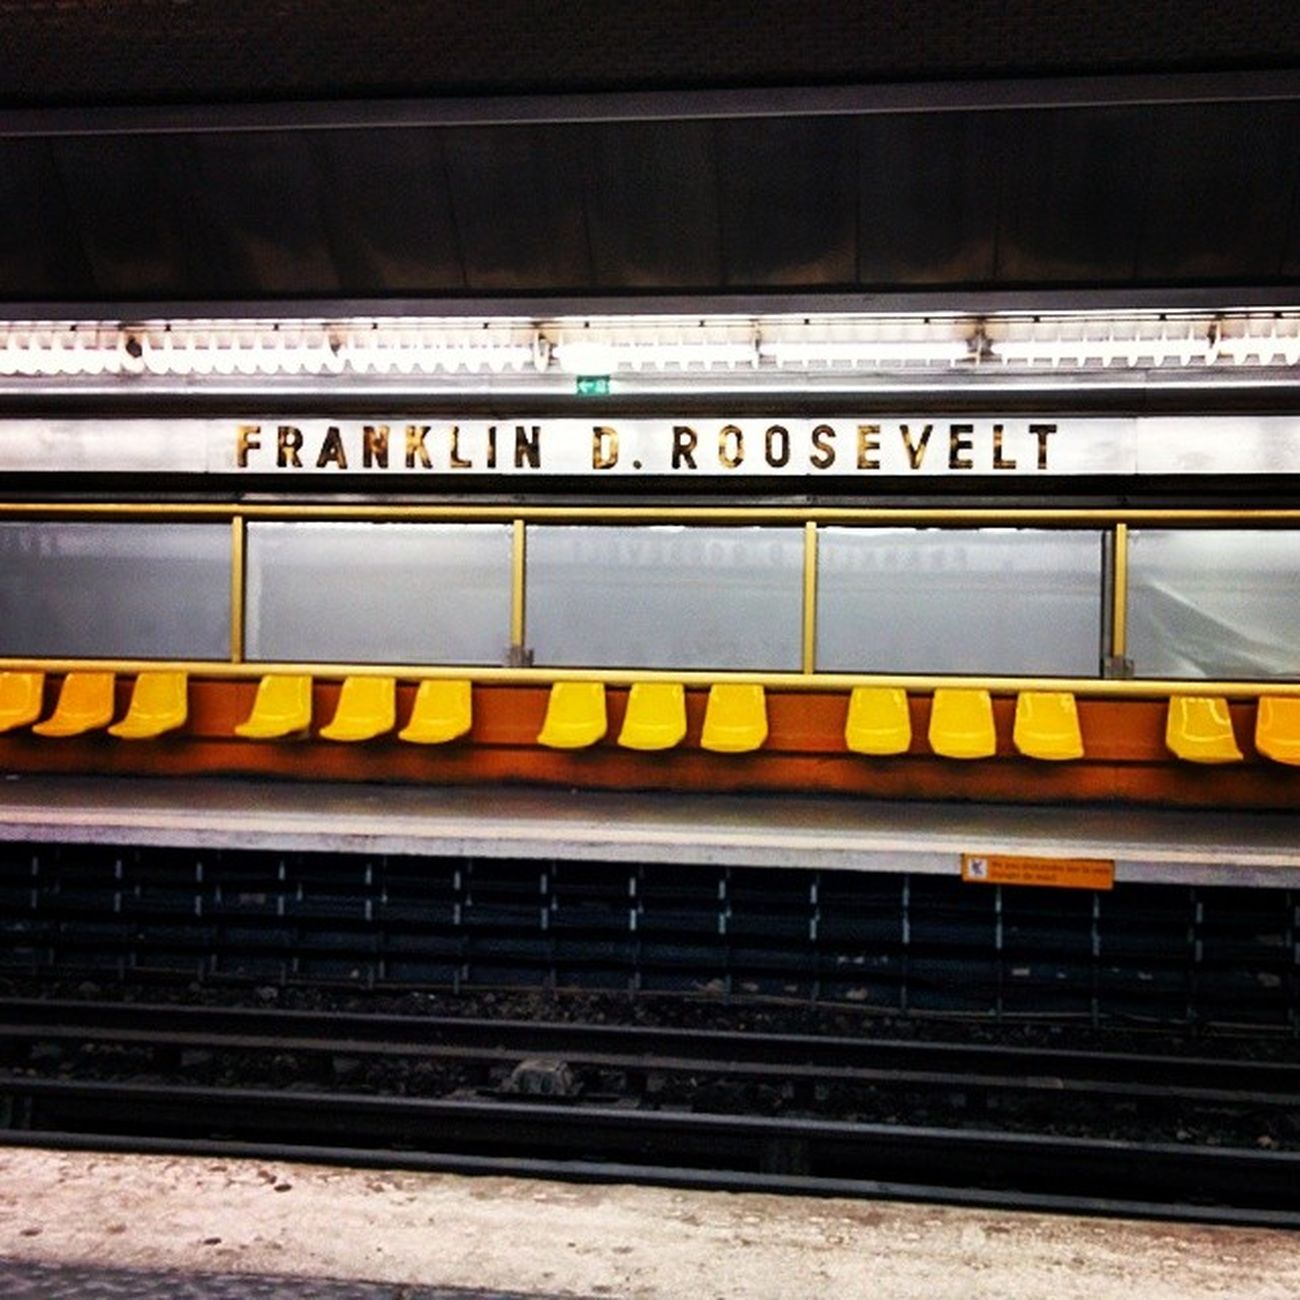 Paris Metro Franklin Droosevelt